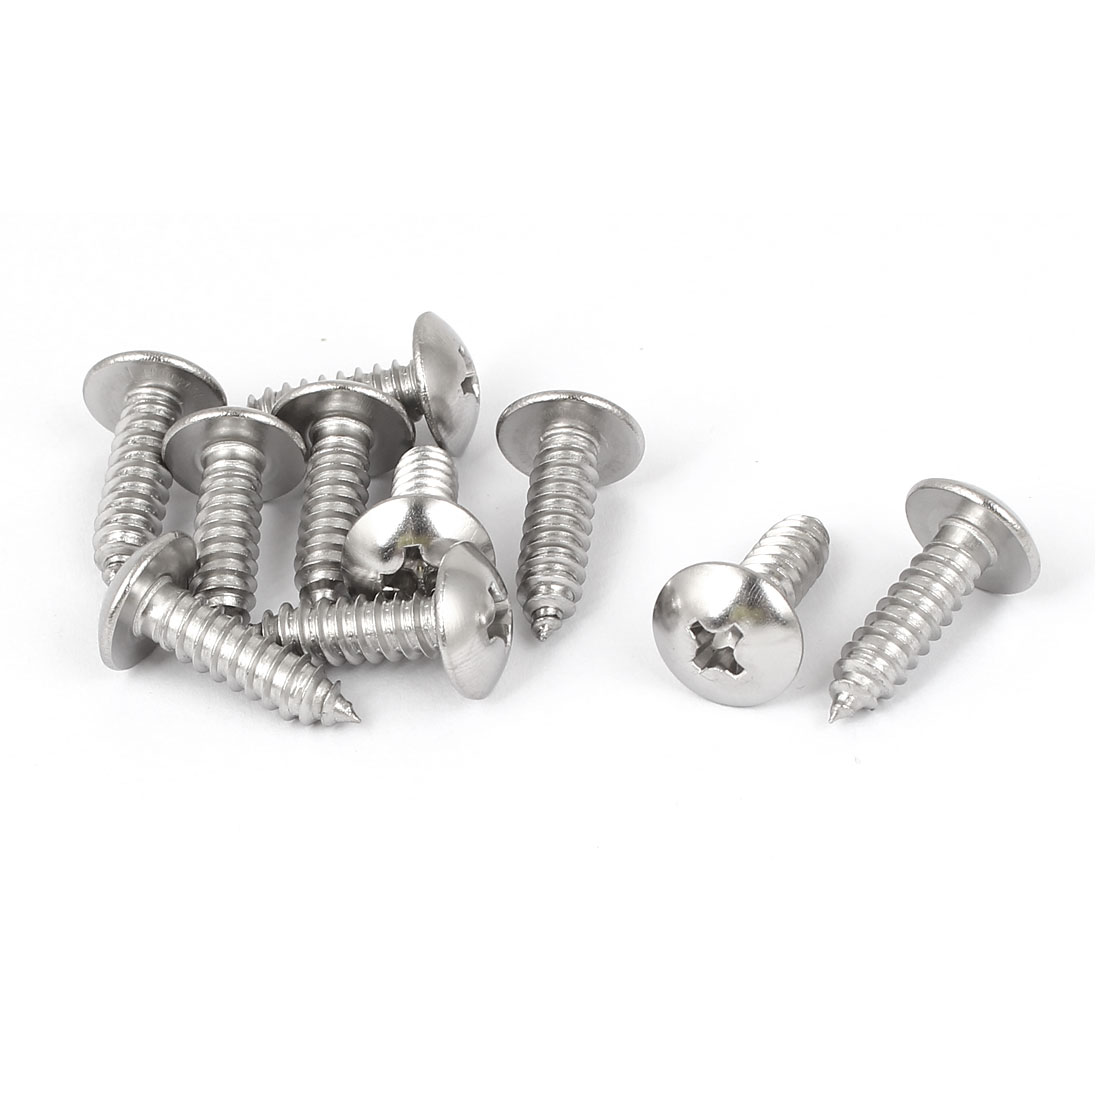 #14 M6.3x22mm Stainless Steel Phillips Truss Head Self Tapping Screws 10pcs